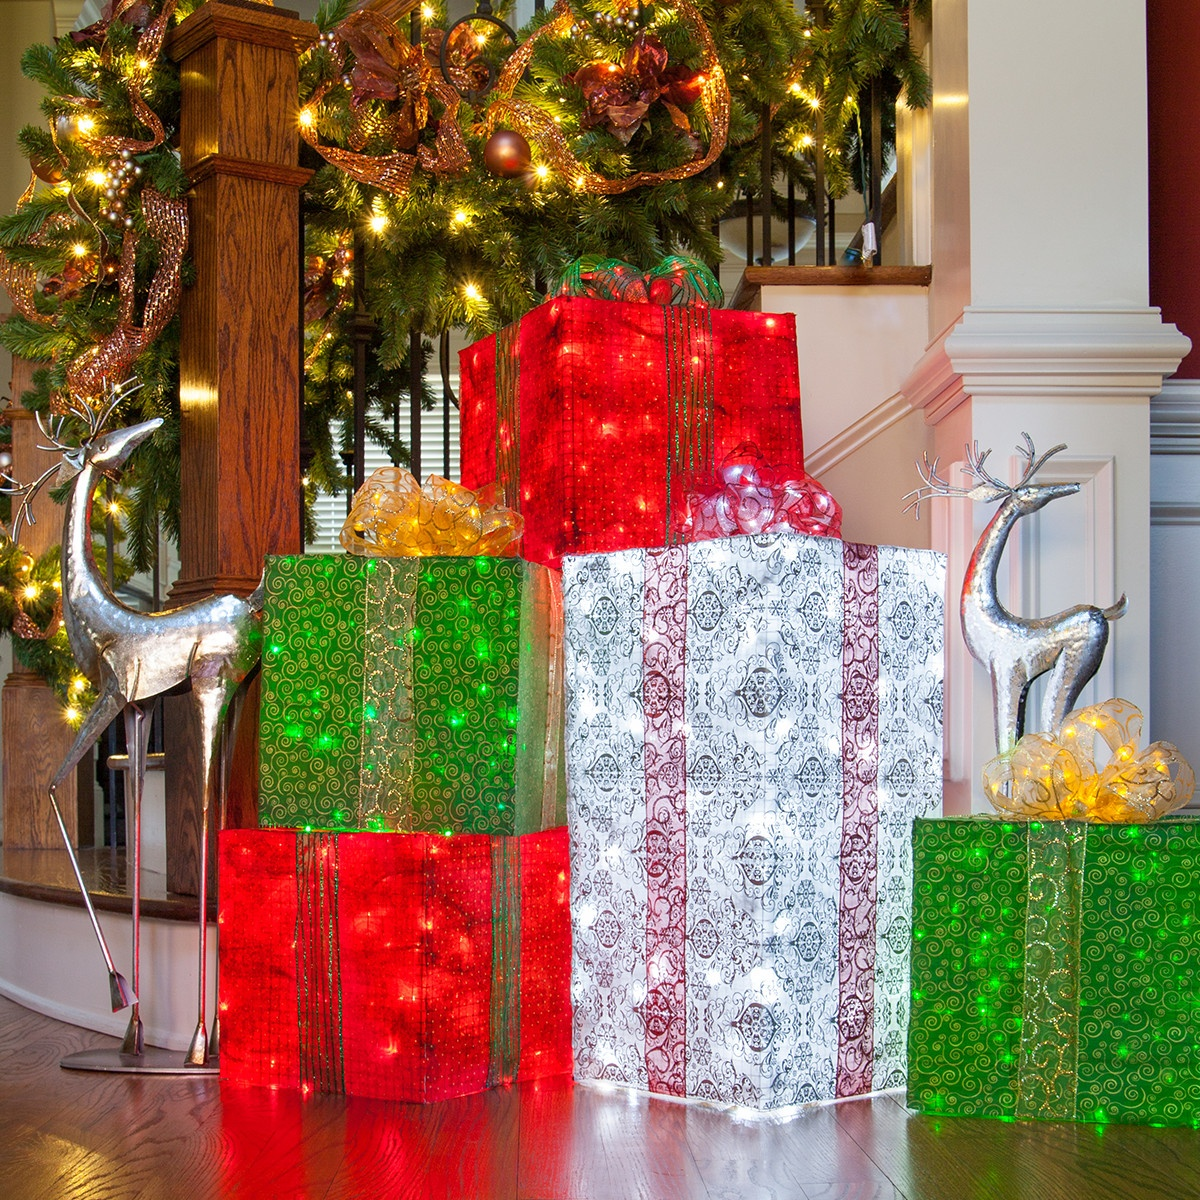 DIY Christmas Decorations - 4 Lighted Gift Boxes